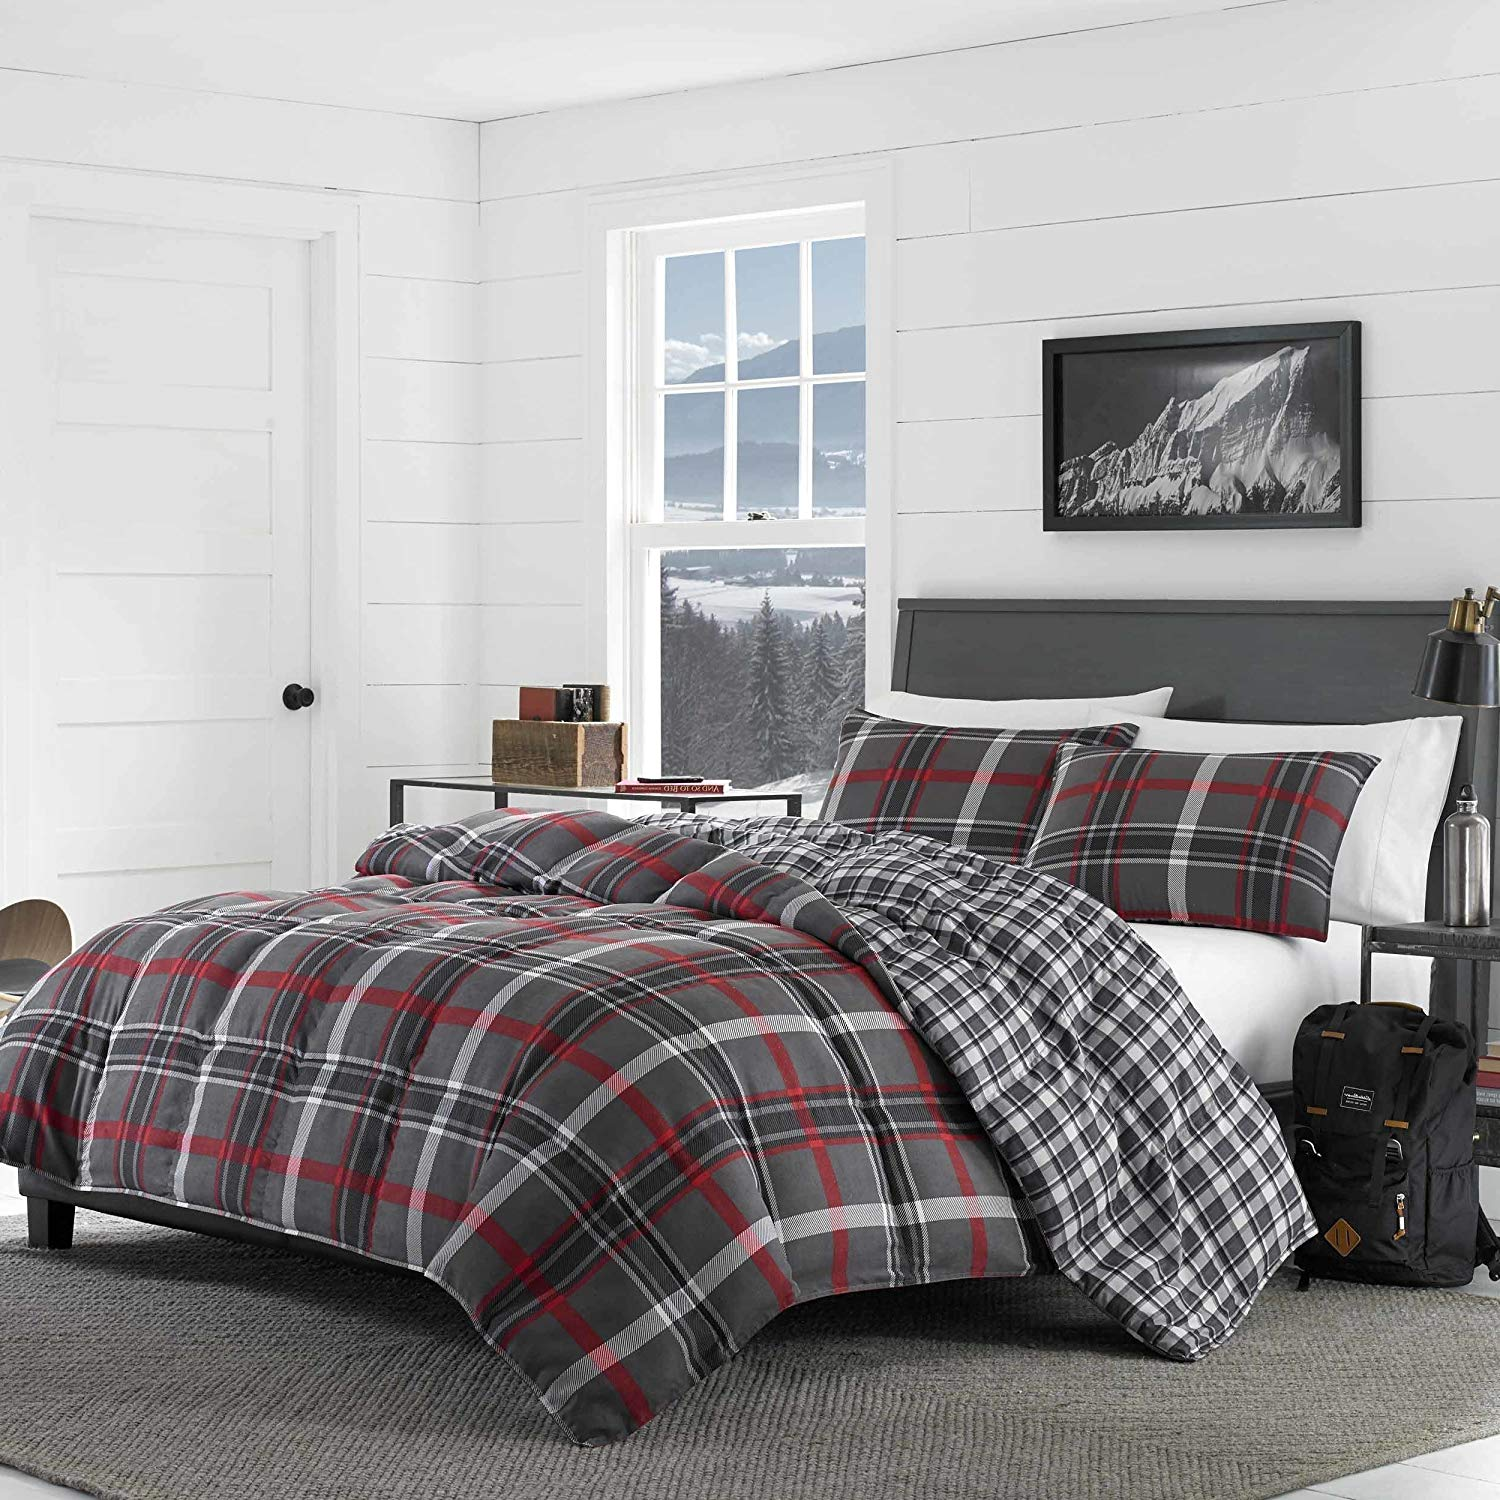 3 Piece Red Grey Plaid Comforter King Set, Gray Checked Bedding Cabin Themed Lodge Lumberjack Pattern Country Hunting Black White Medium Warmth Patchwork, Reversible Cotton Polyester